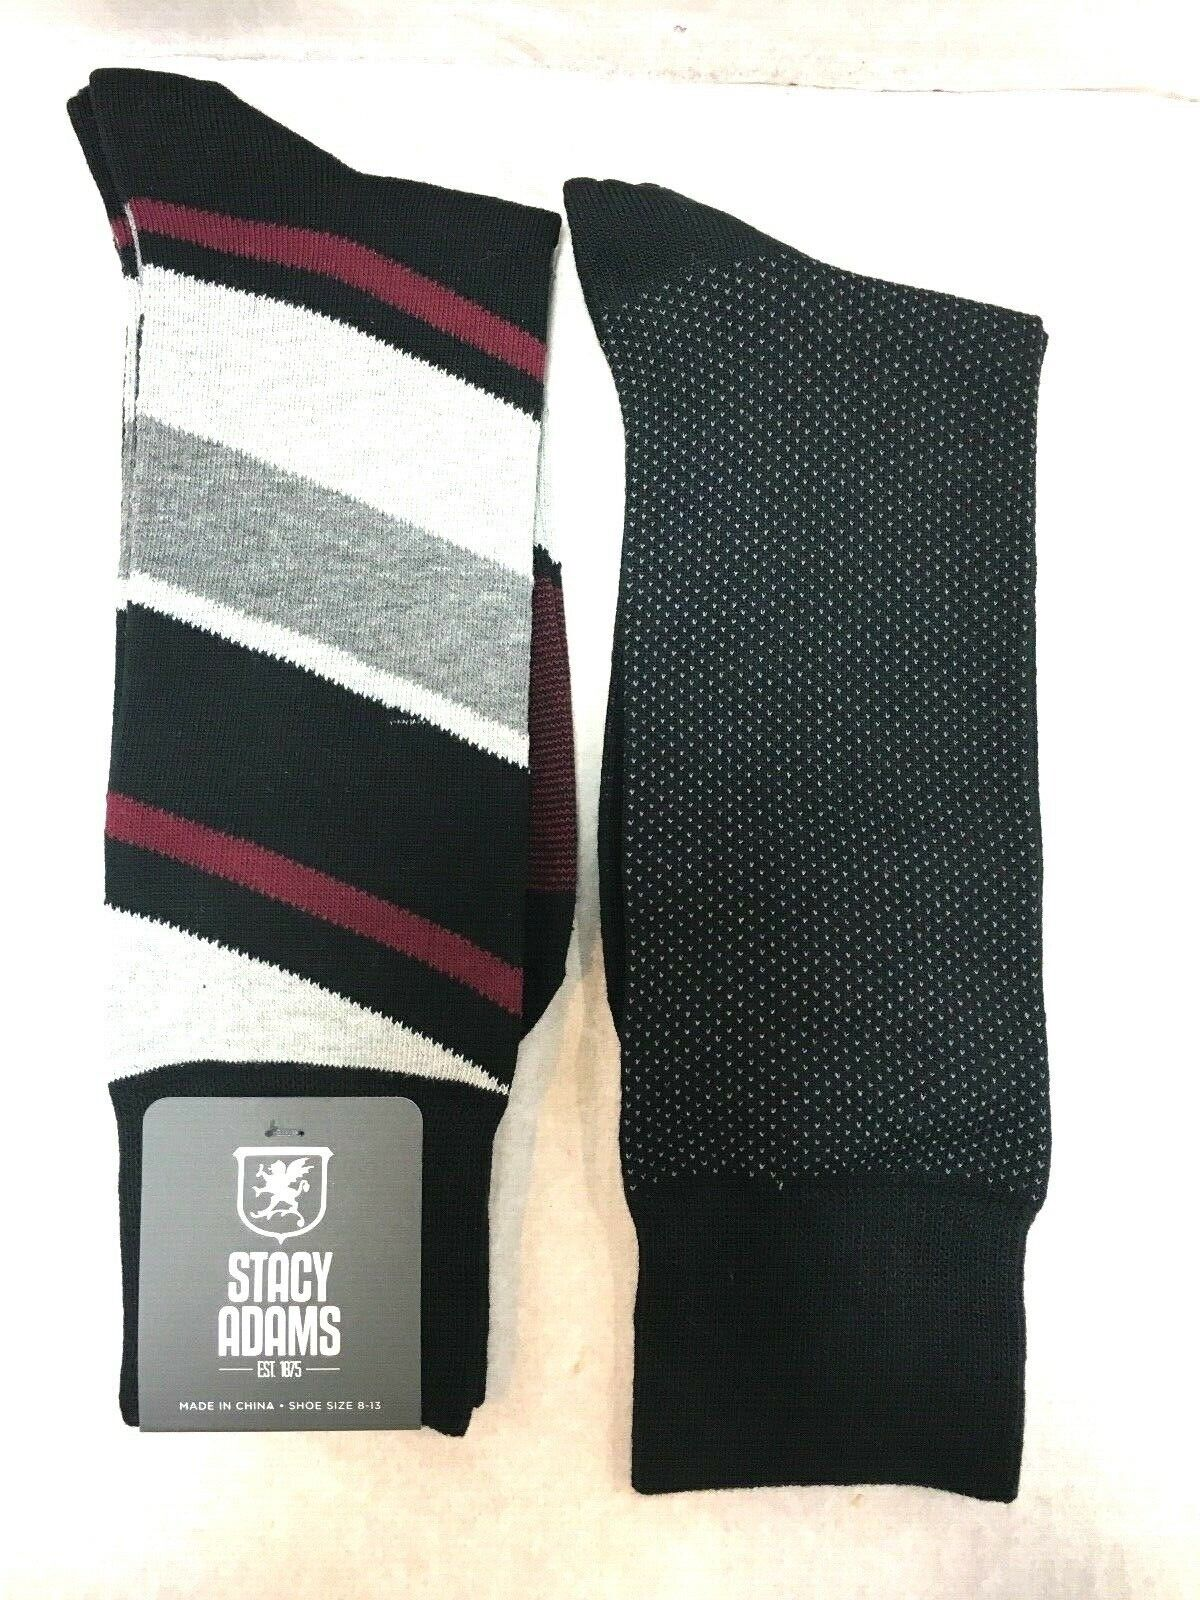 2 PAIRS PACK BRAND NEW WITH TAG MEN'S STACY ADAMS DRESS / CASUAL SOCKS Clothing, Shoes & Accessories